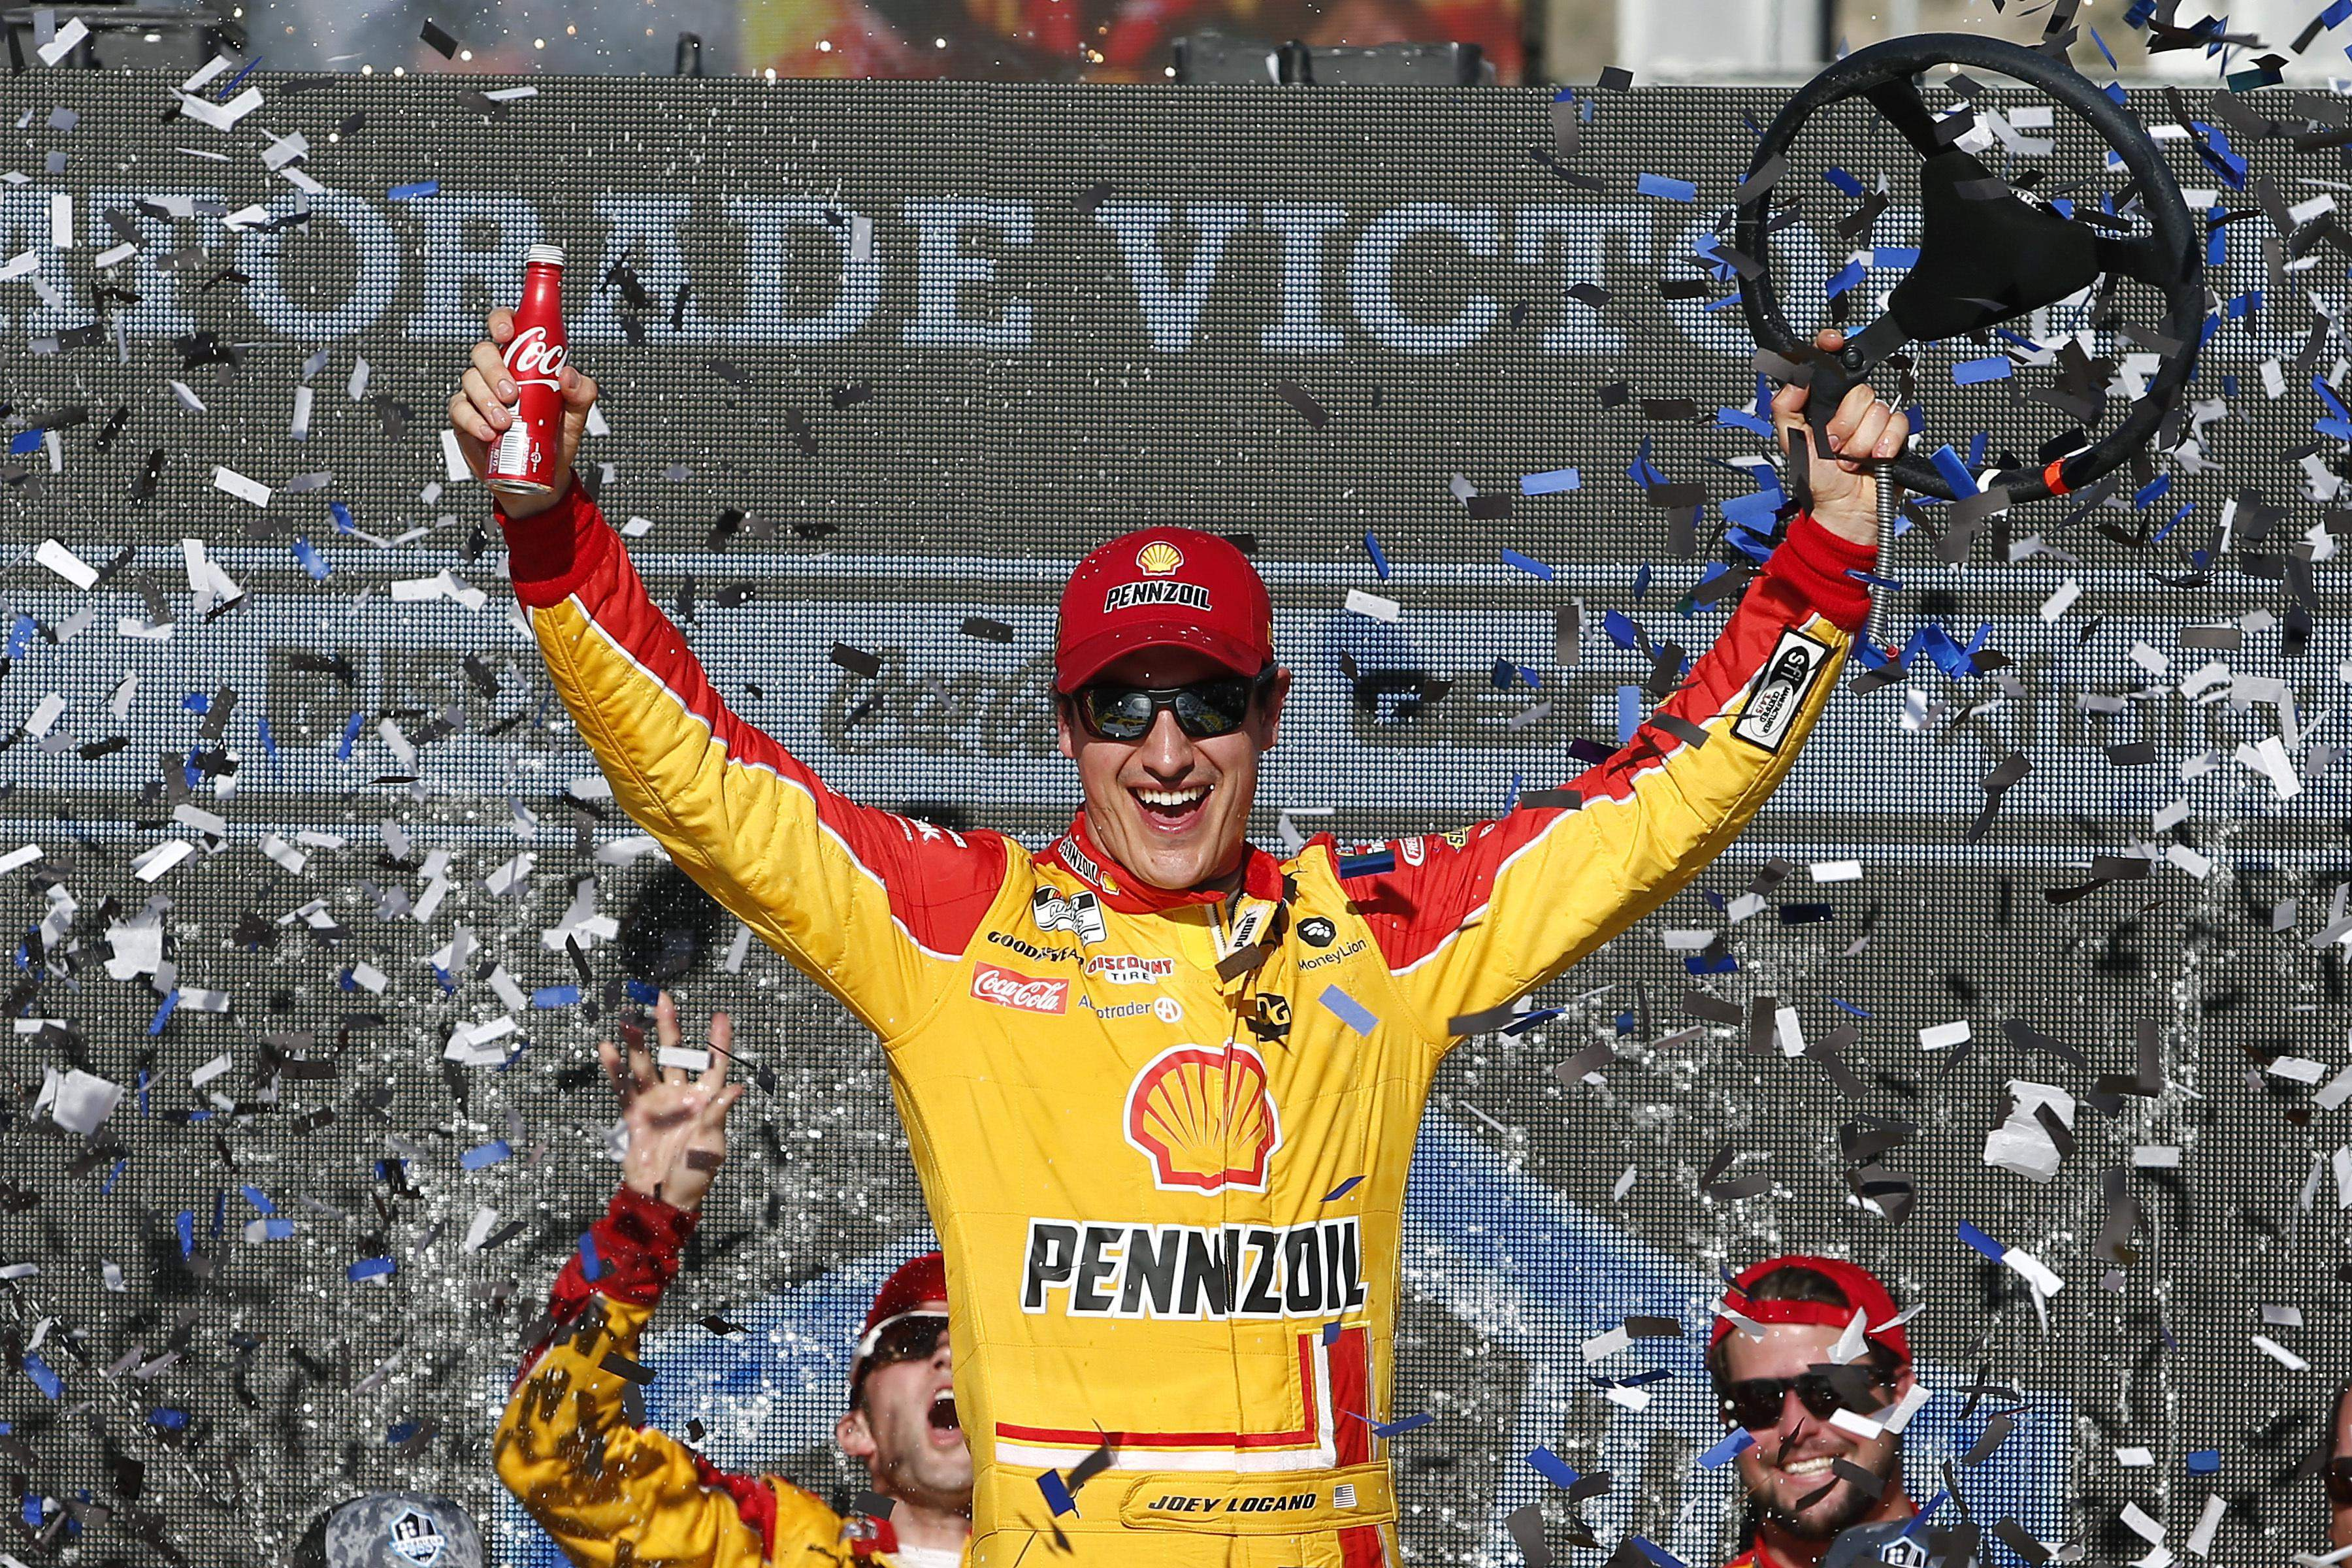 Logano won three times last season in his 22 Ford Mustang. I bet he'll add to his successful career with more wins this year making him a top driver to watch.